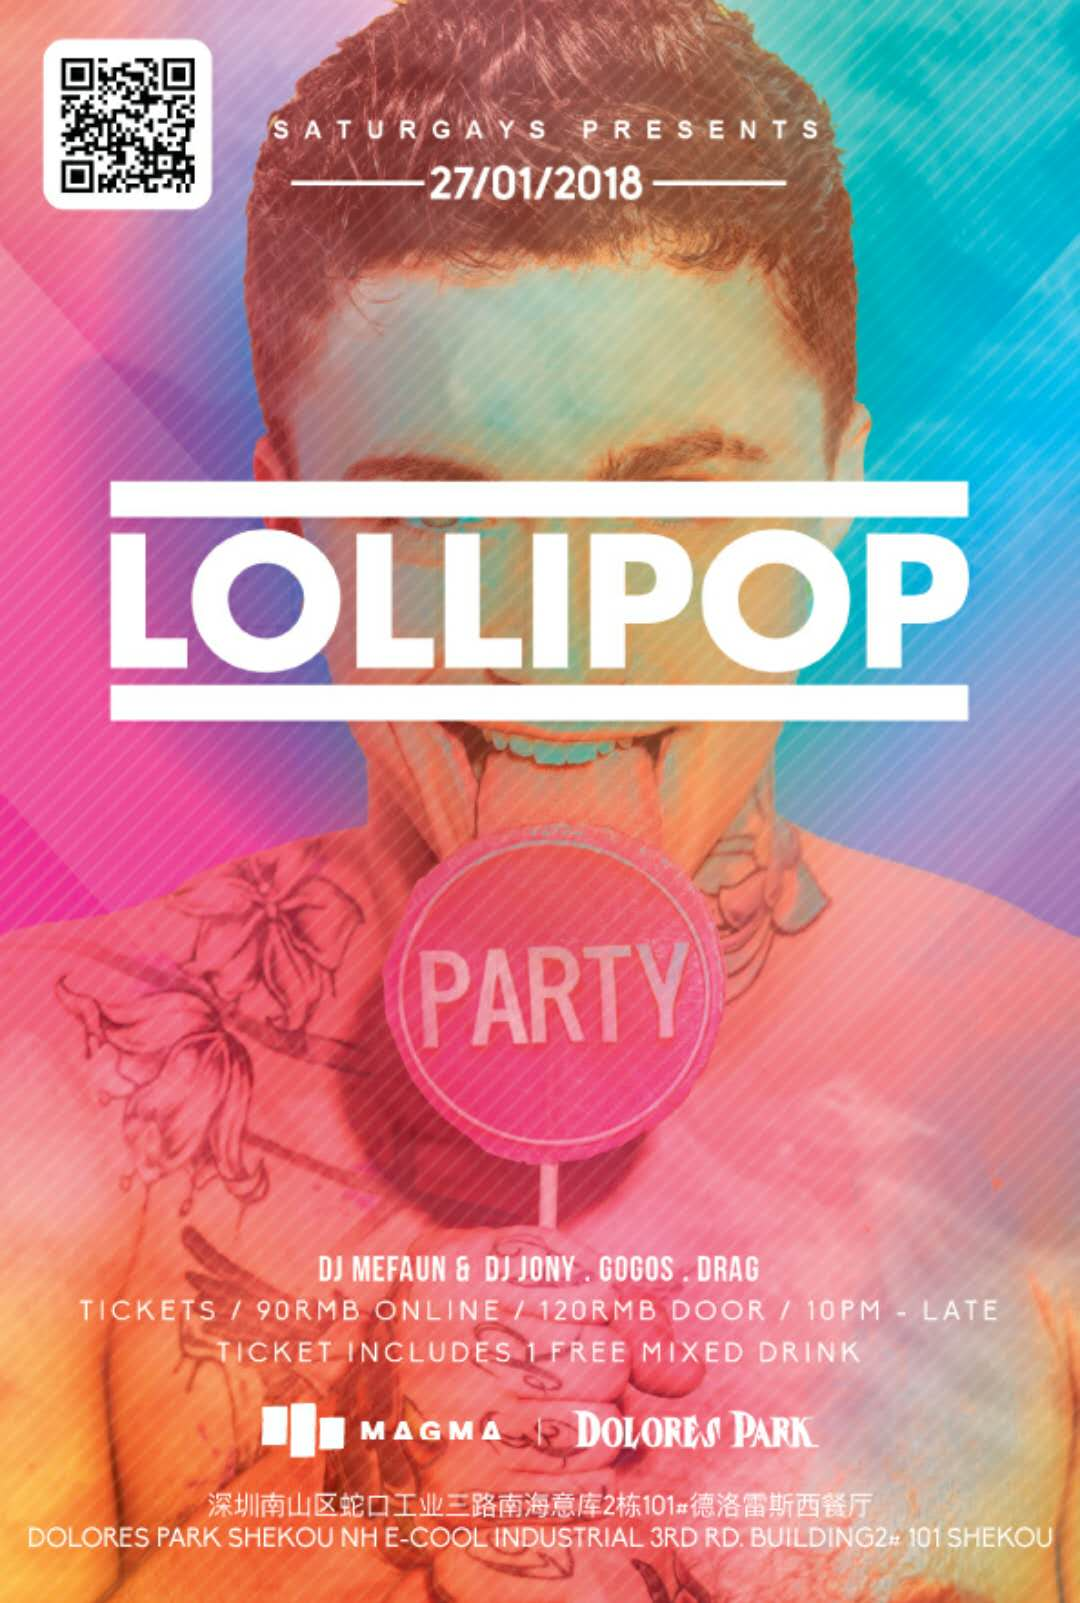 Lollipop-SZ-poster.JPG